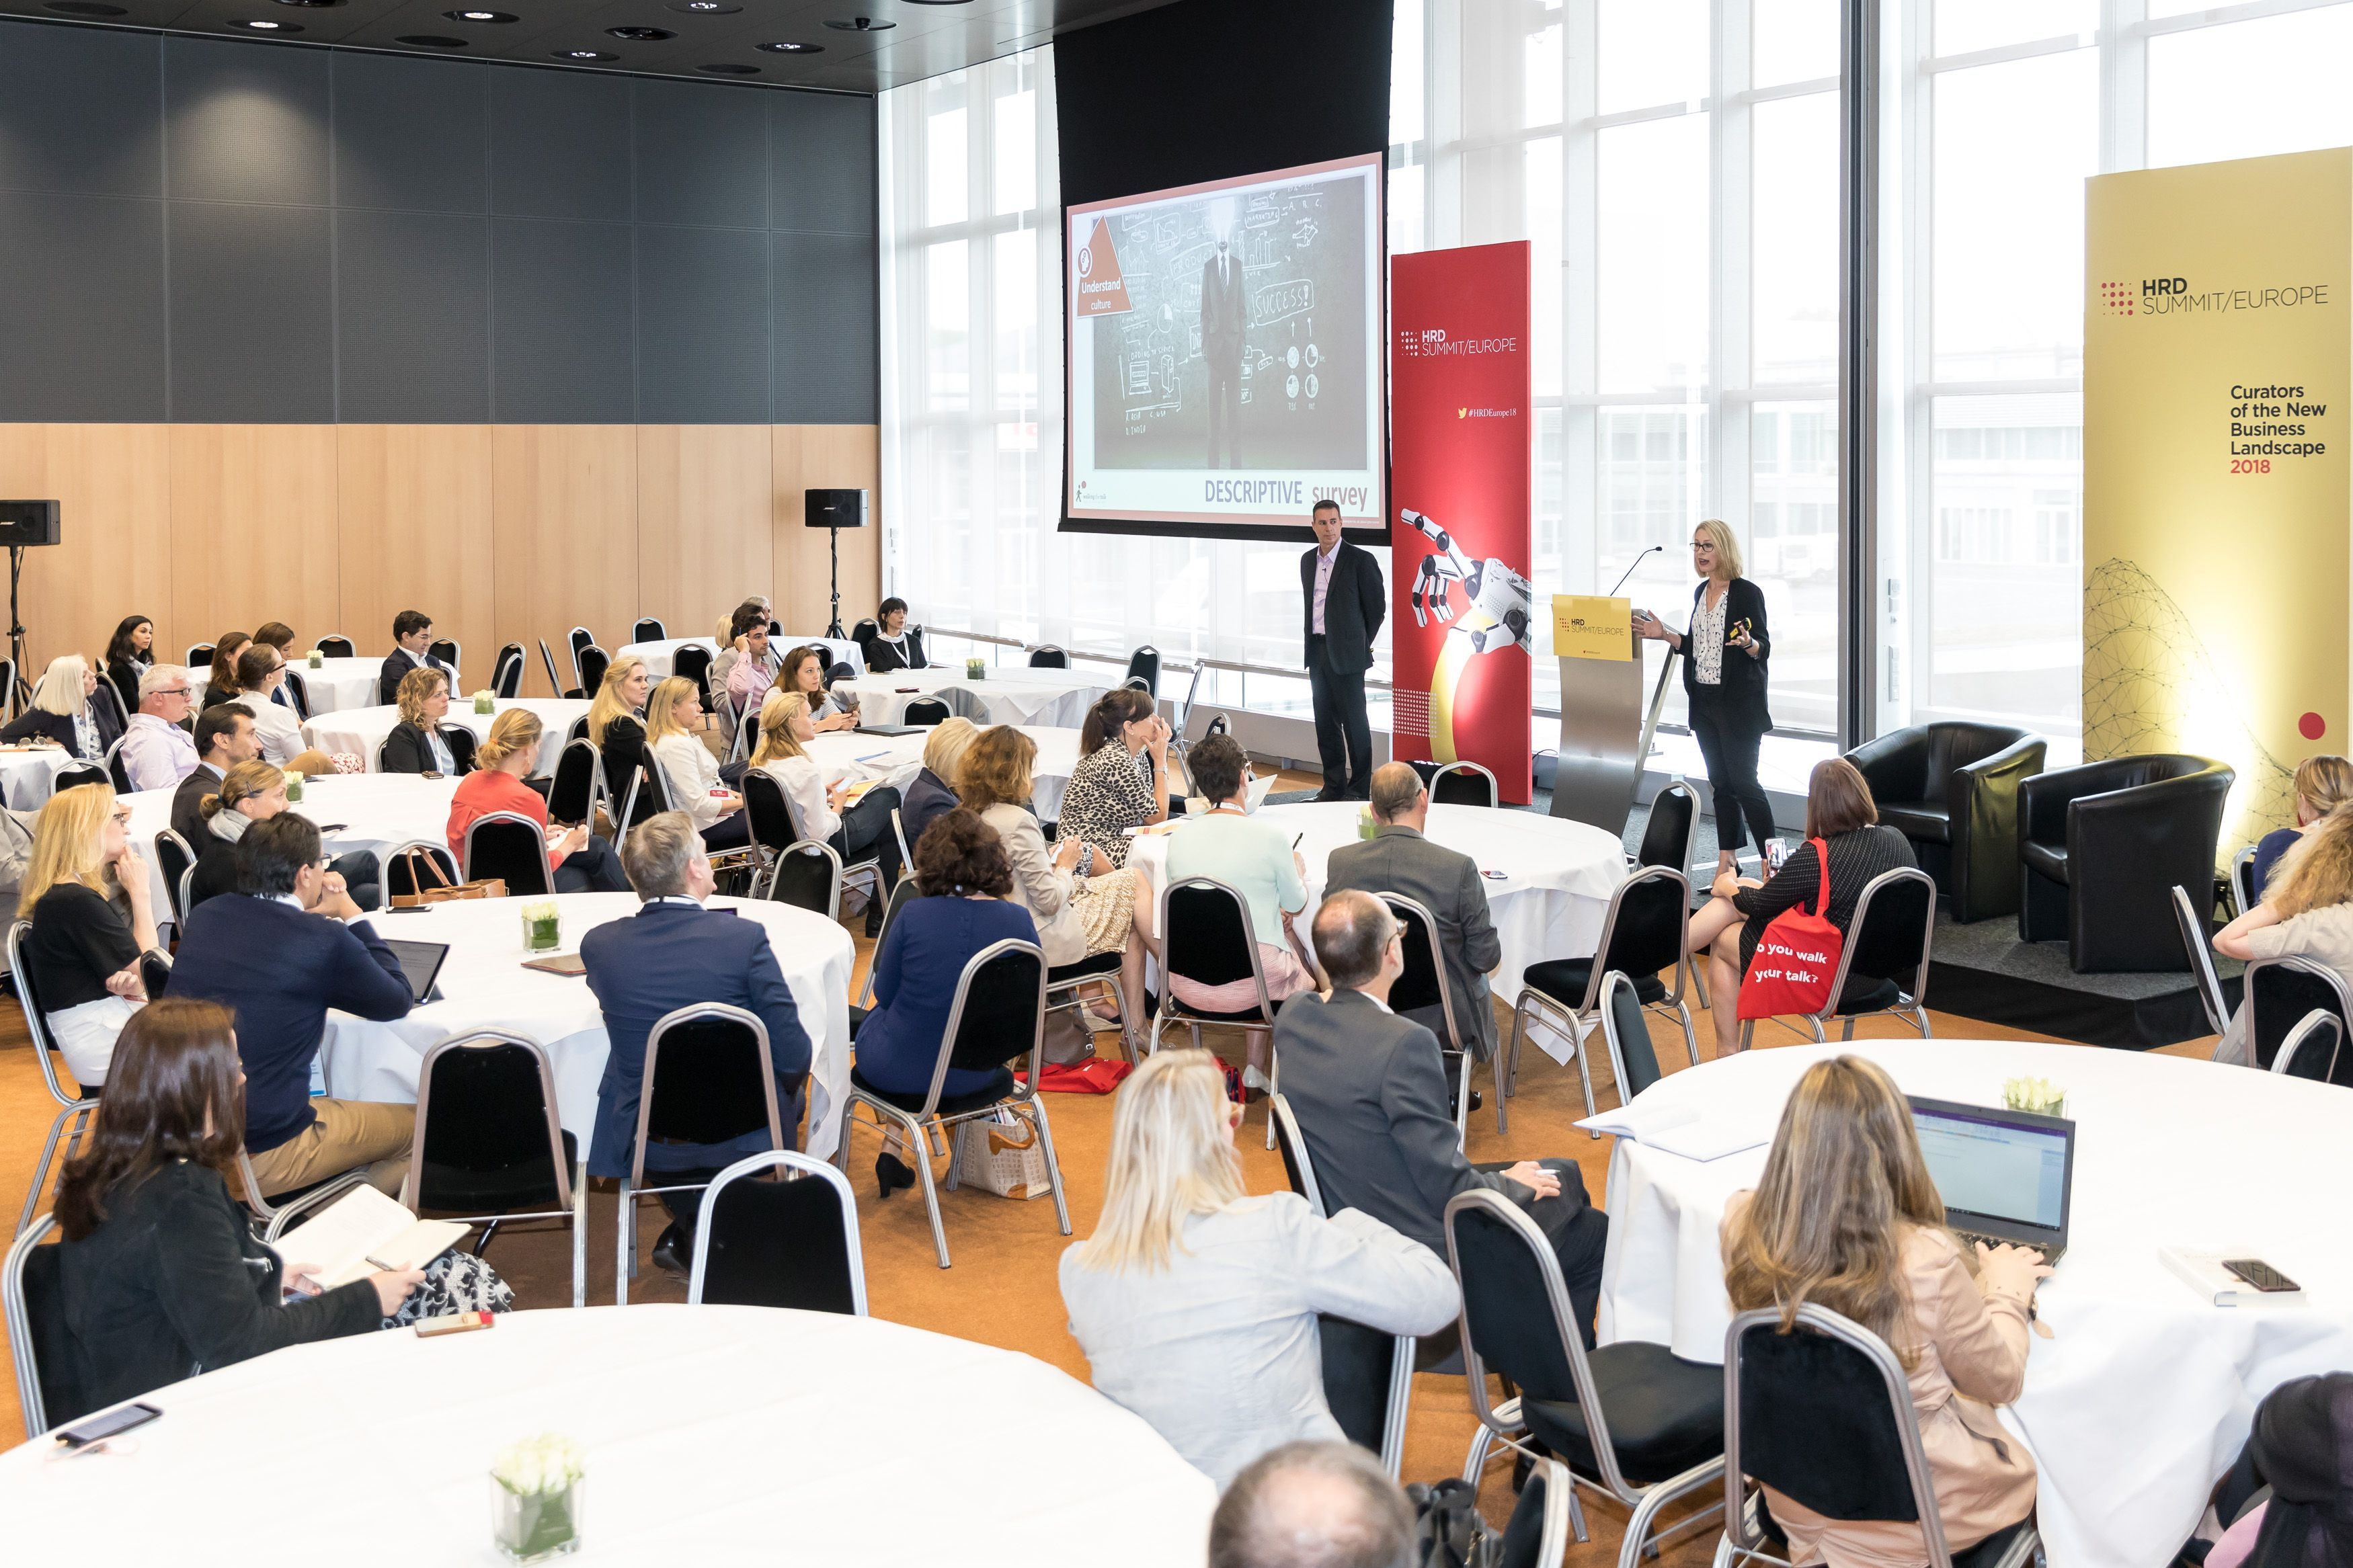 HRD-Summit-Europe-2018-Small-140 Walking the Talk Executive Directors Jerome Parisse-Brassens and Amanda Fajak explain how to use culture measurement to drive sustainable change.